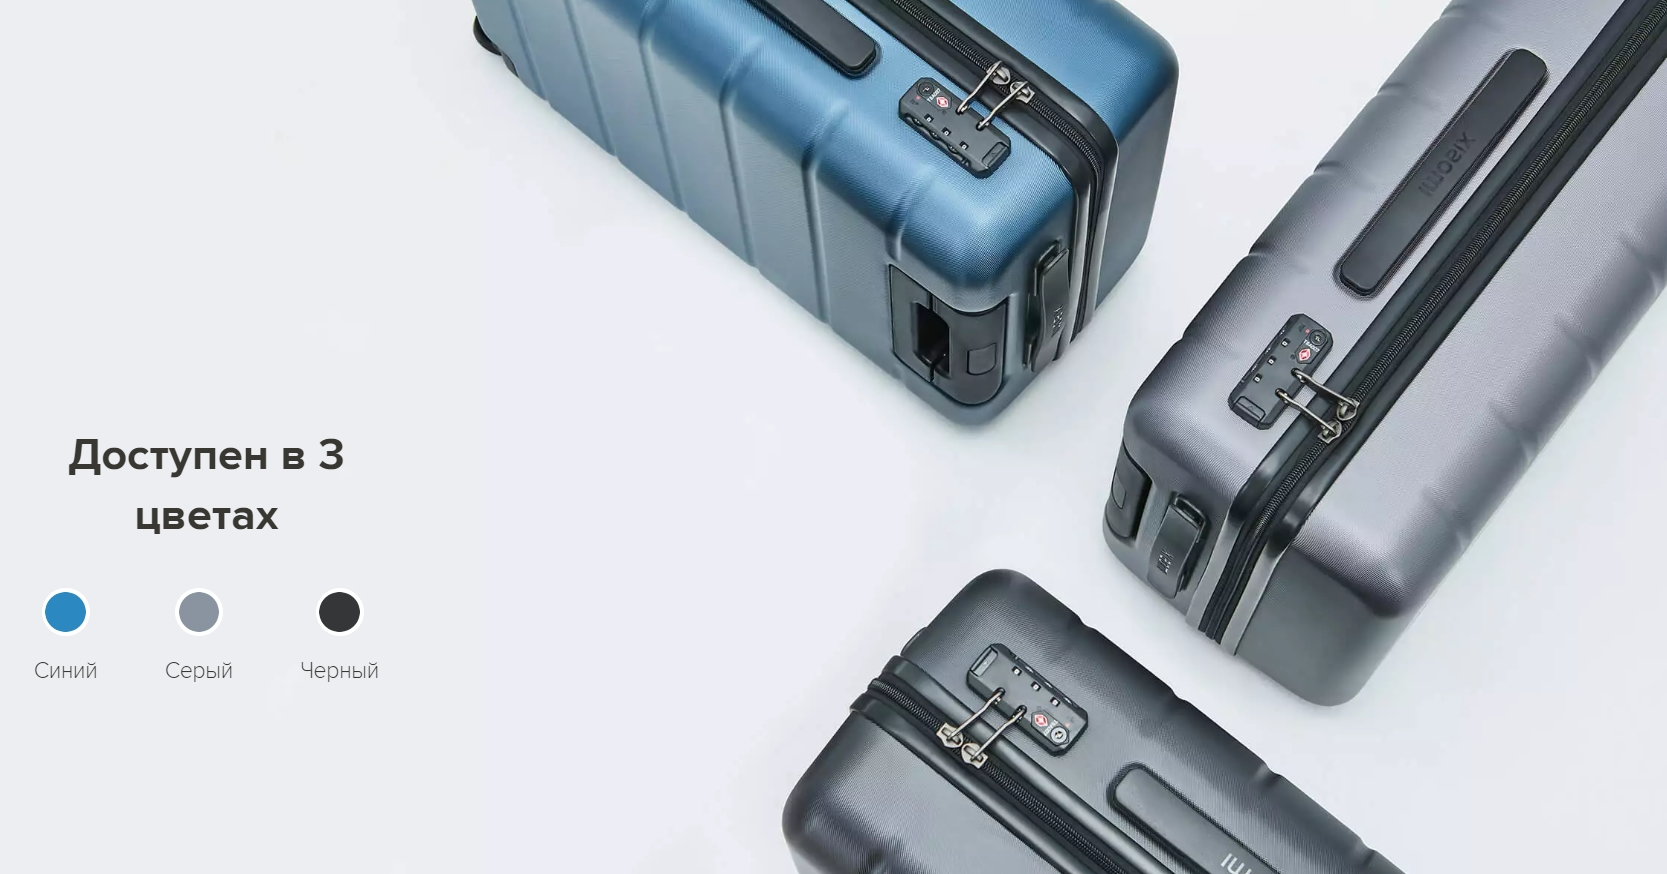 Чемодан Xiaomi Suitcase Luggage Classic Series 20 дюймов